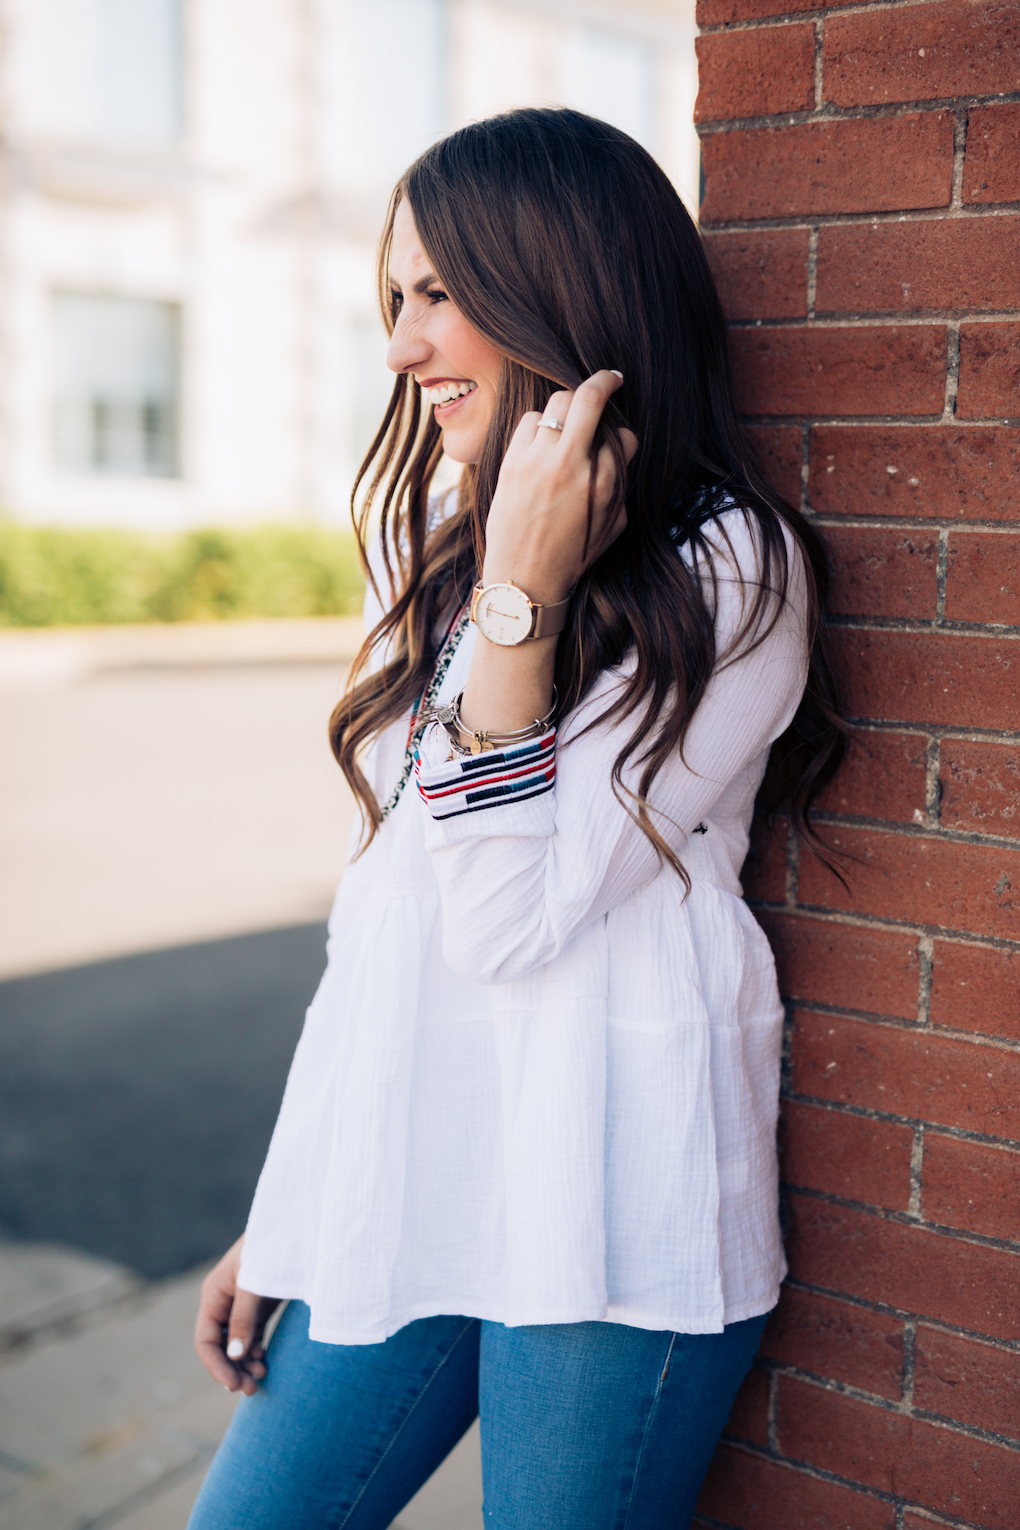 Girl in white peplum top with bright colored embroidery and skinny jeans with maroon booties and arvo watch with alex and ani bracelets